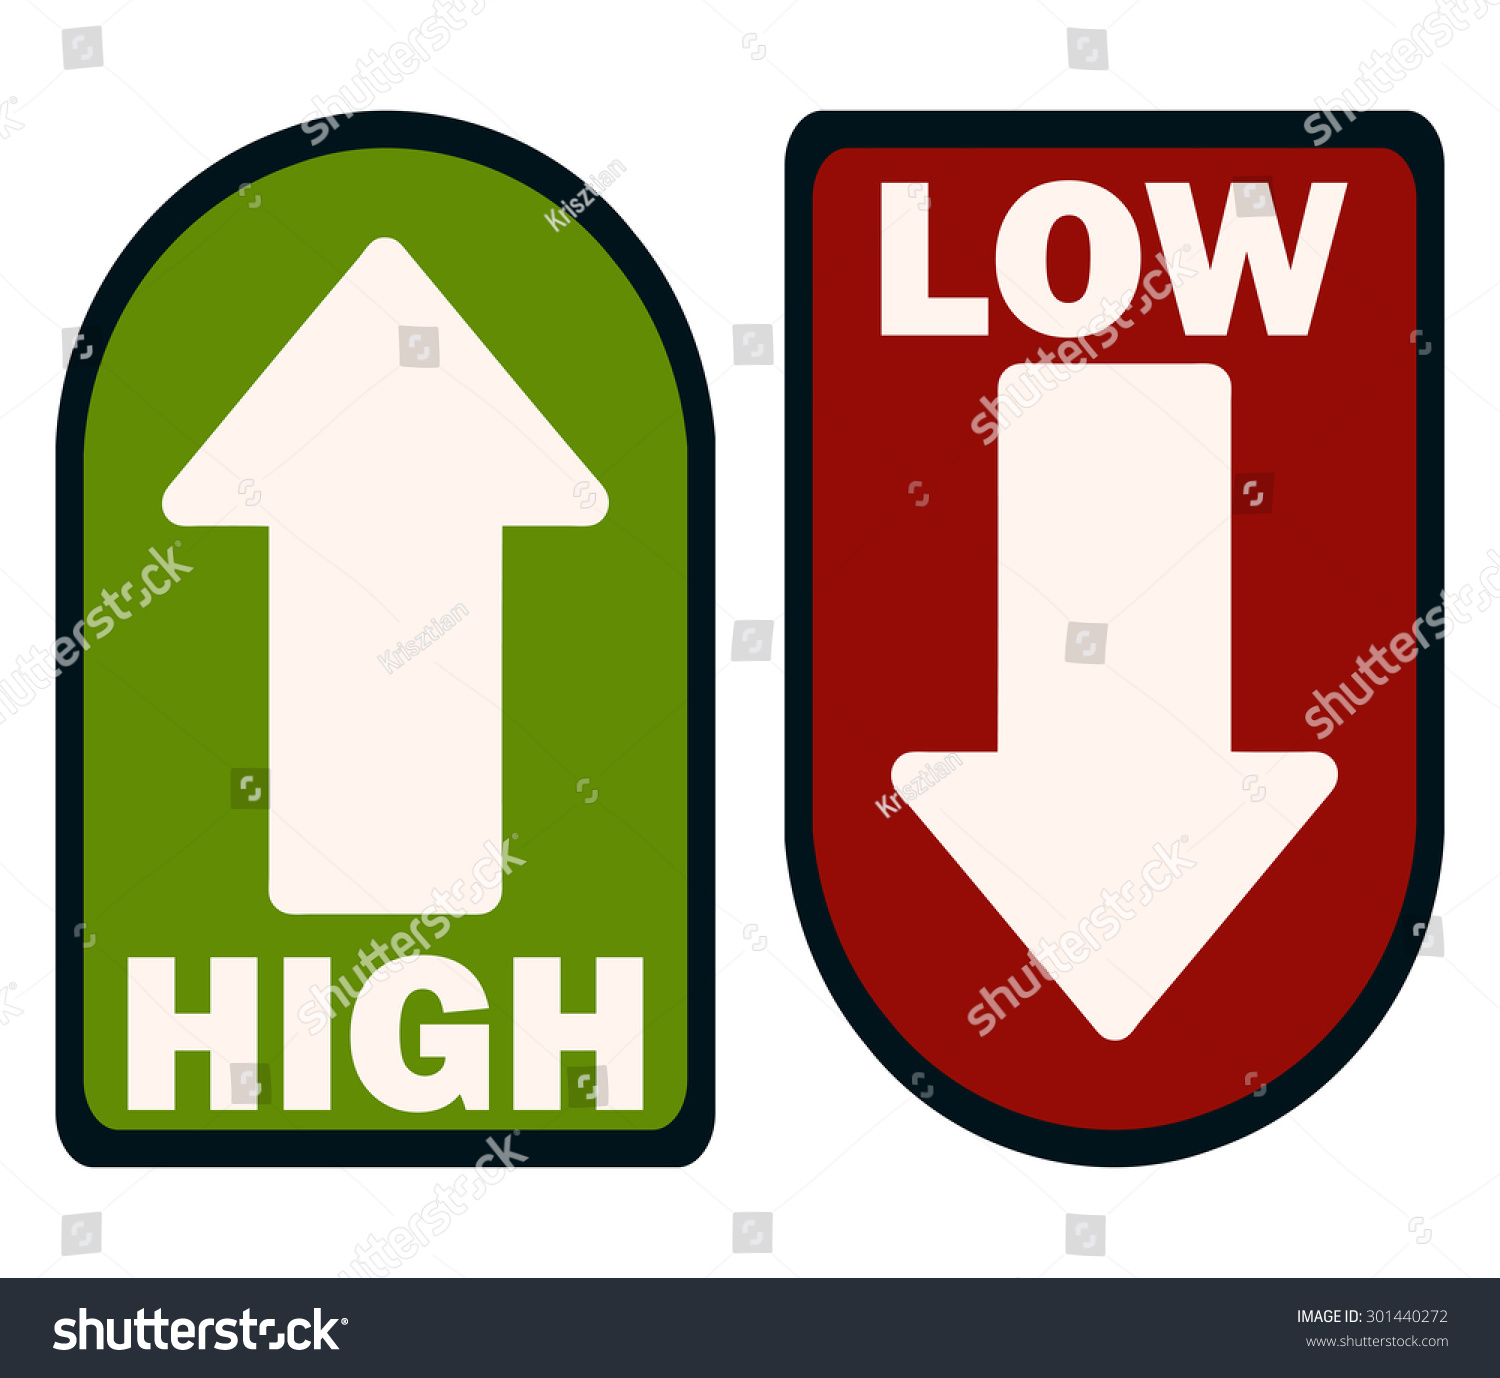 Http Www Shutterstock Com Pic 301440272 Stock Vector Green High And Red Low Arrow Signs Vector Illustration Html